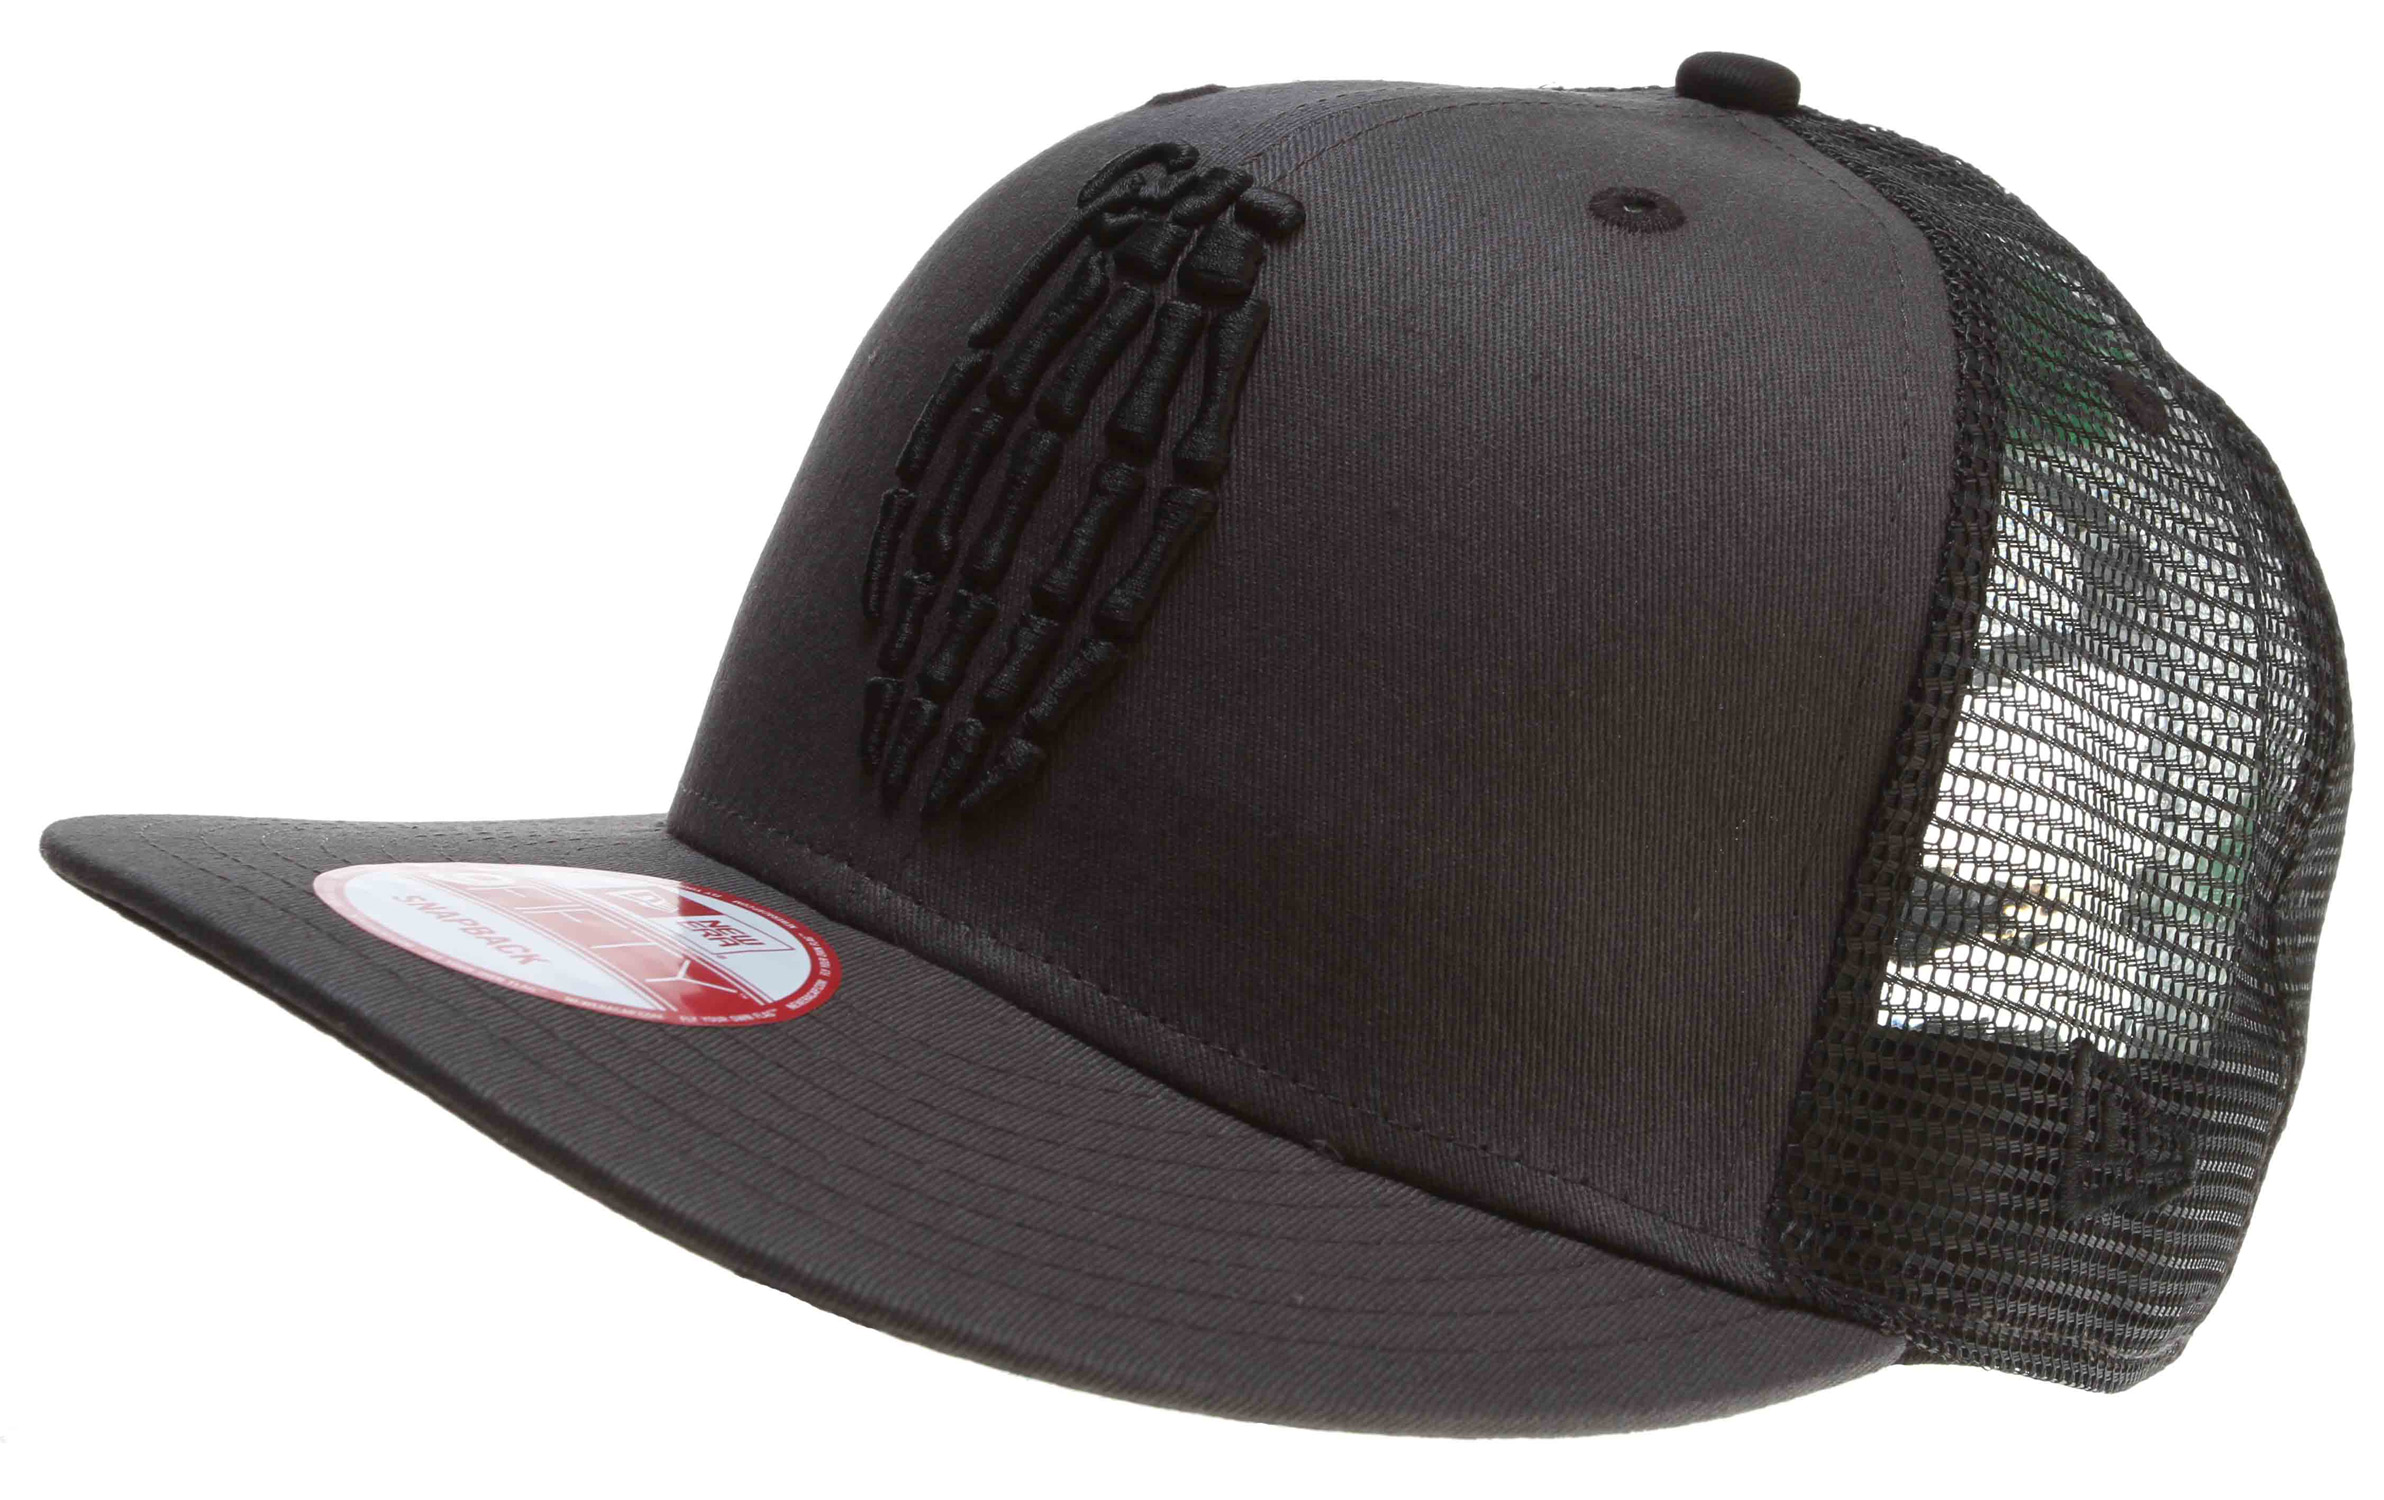 Key Features of the Grenade Skull Bomb Mesh Cap: 100% cotton New Era Mesh Snap Back Embroidered logo - $24.95